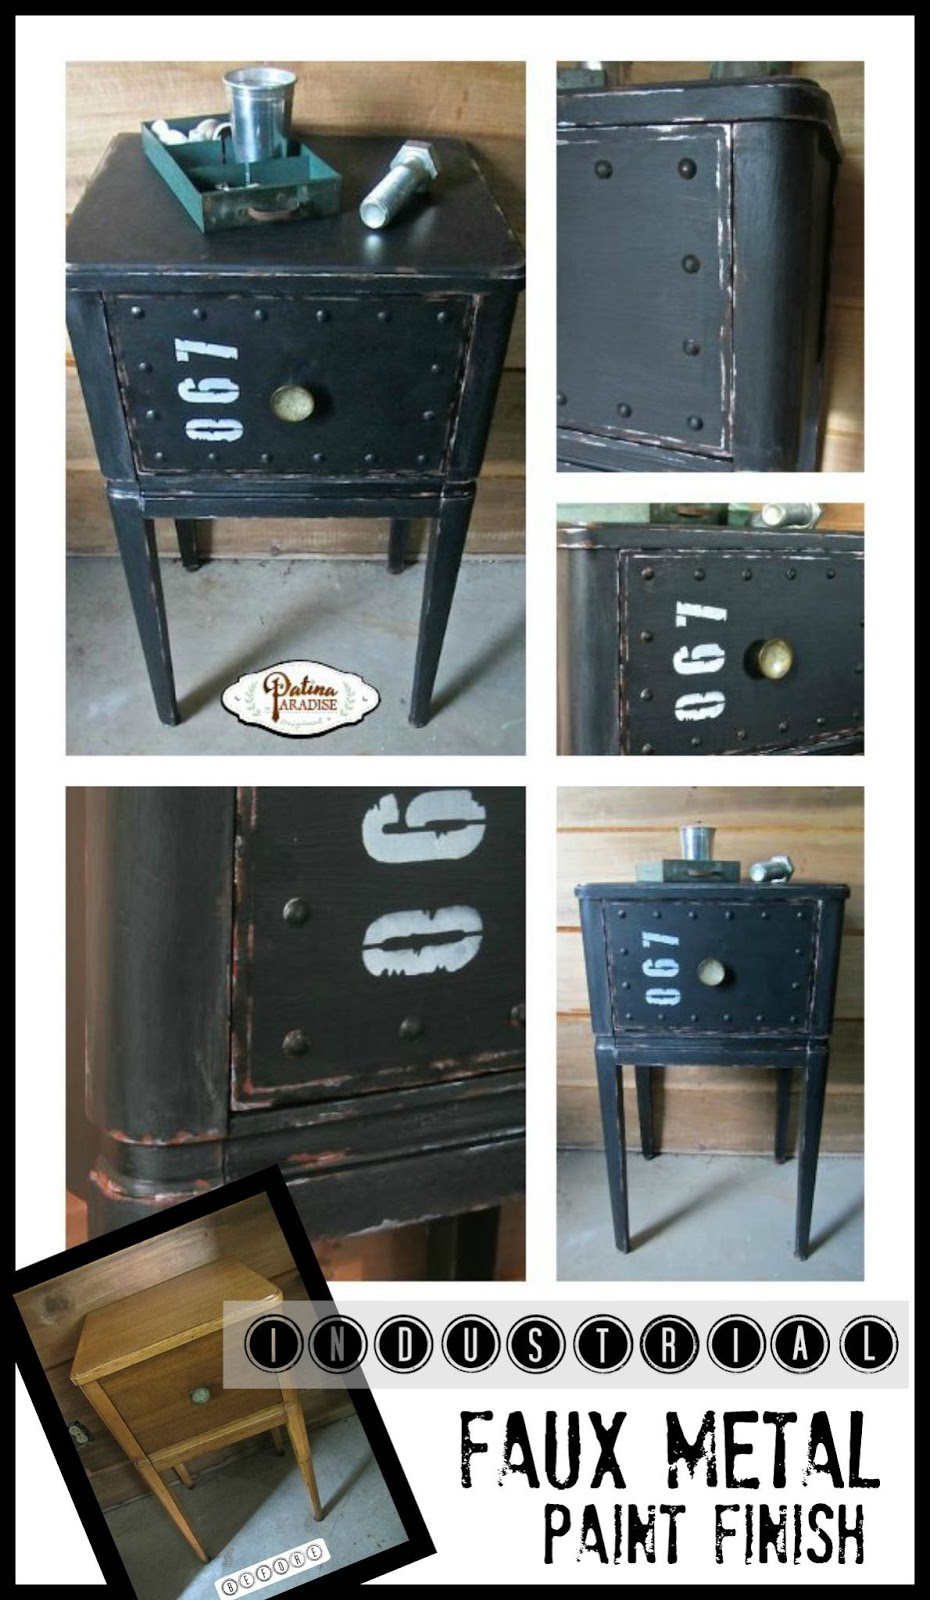 How To Make Industrial Furniture #18: Patina Paradise